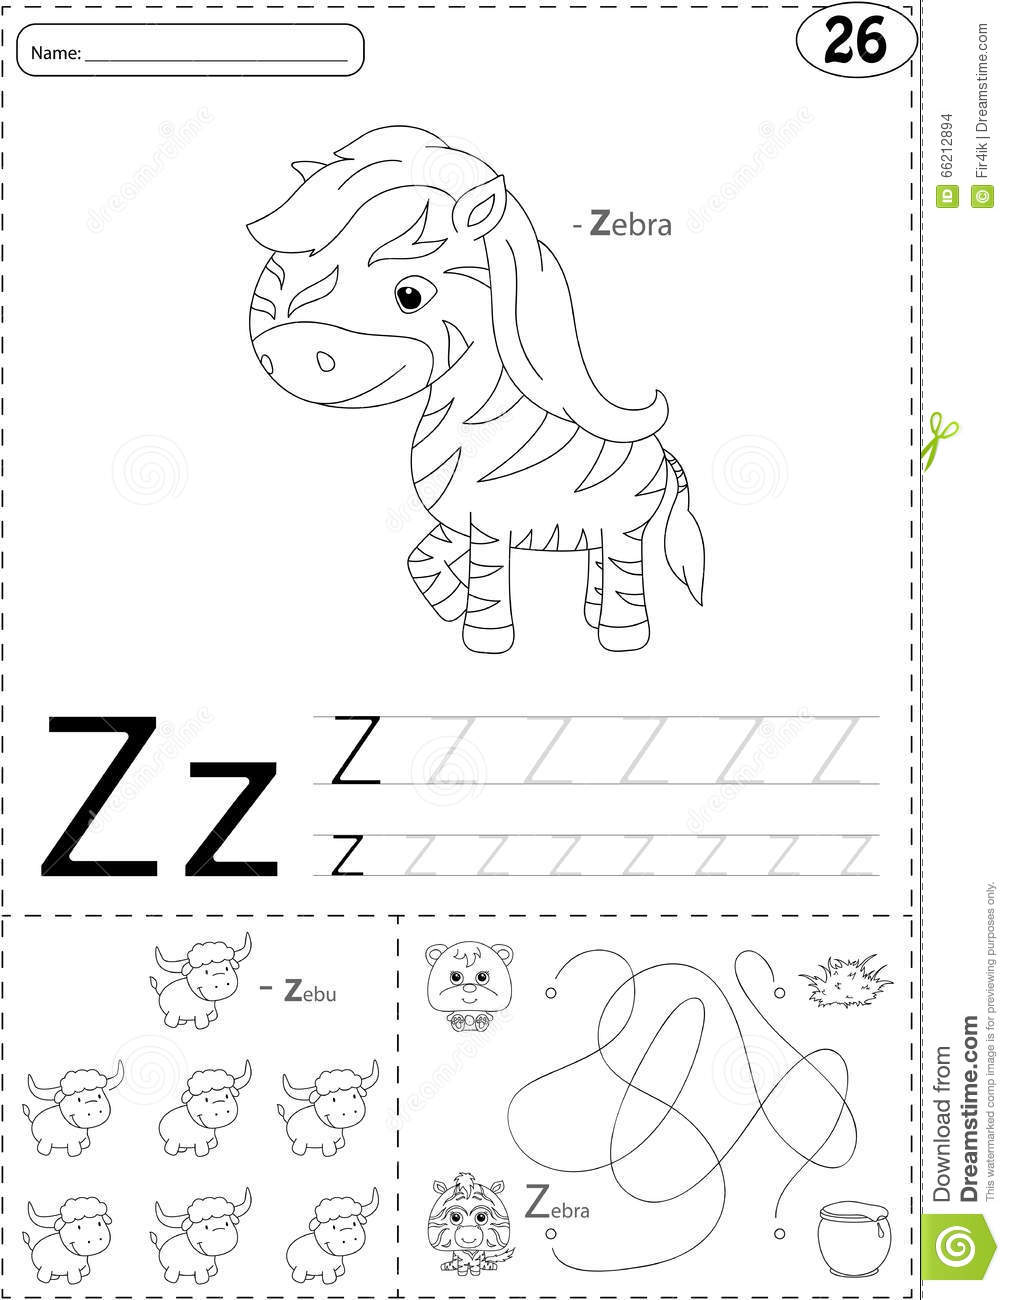 Cartoon Zebra And Zebu. Alphabet Tracing Worksheet